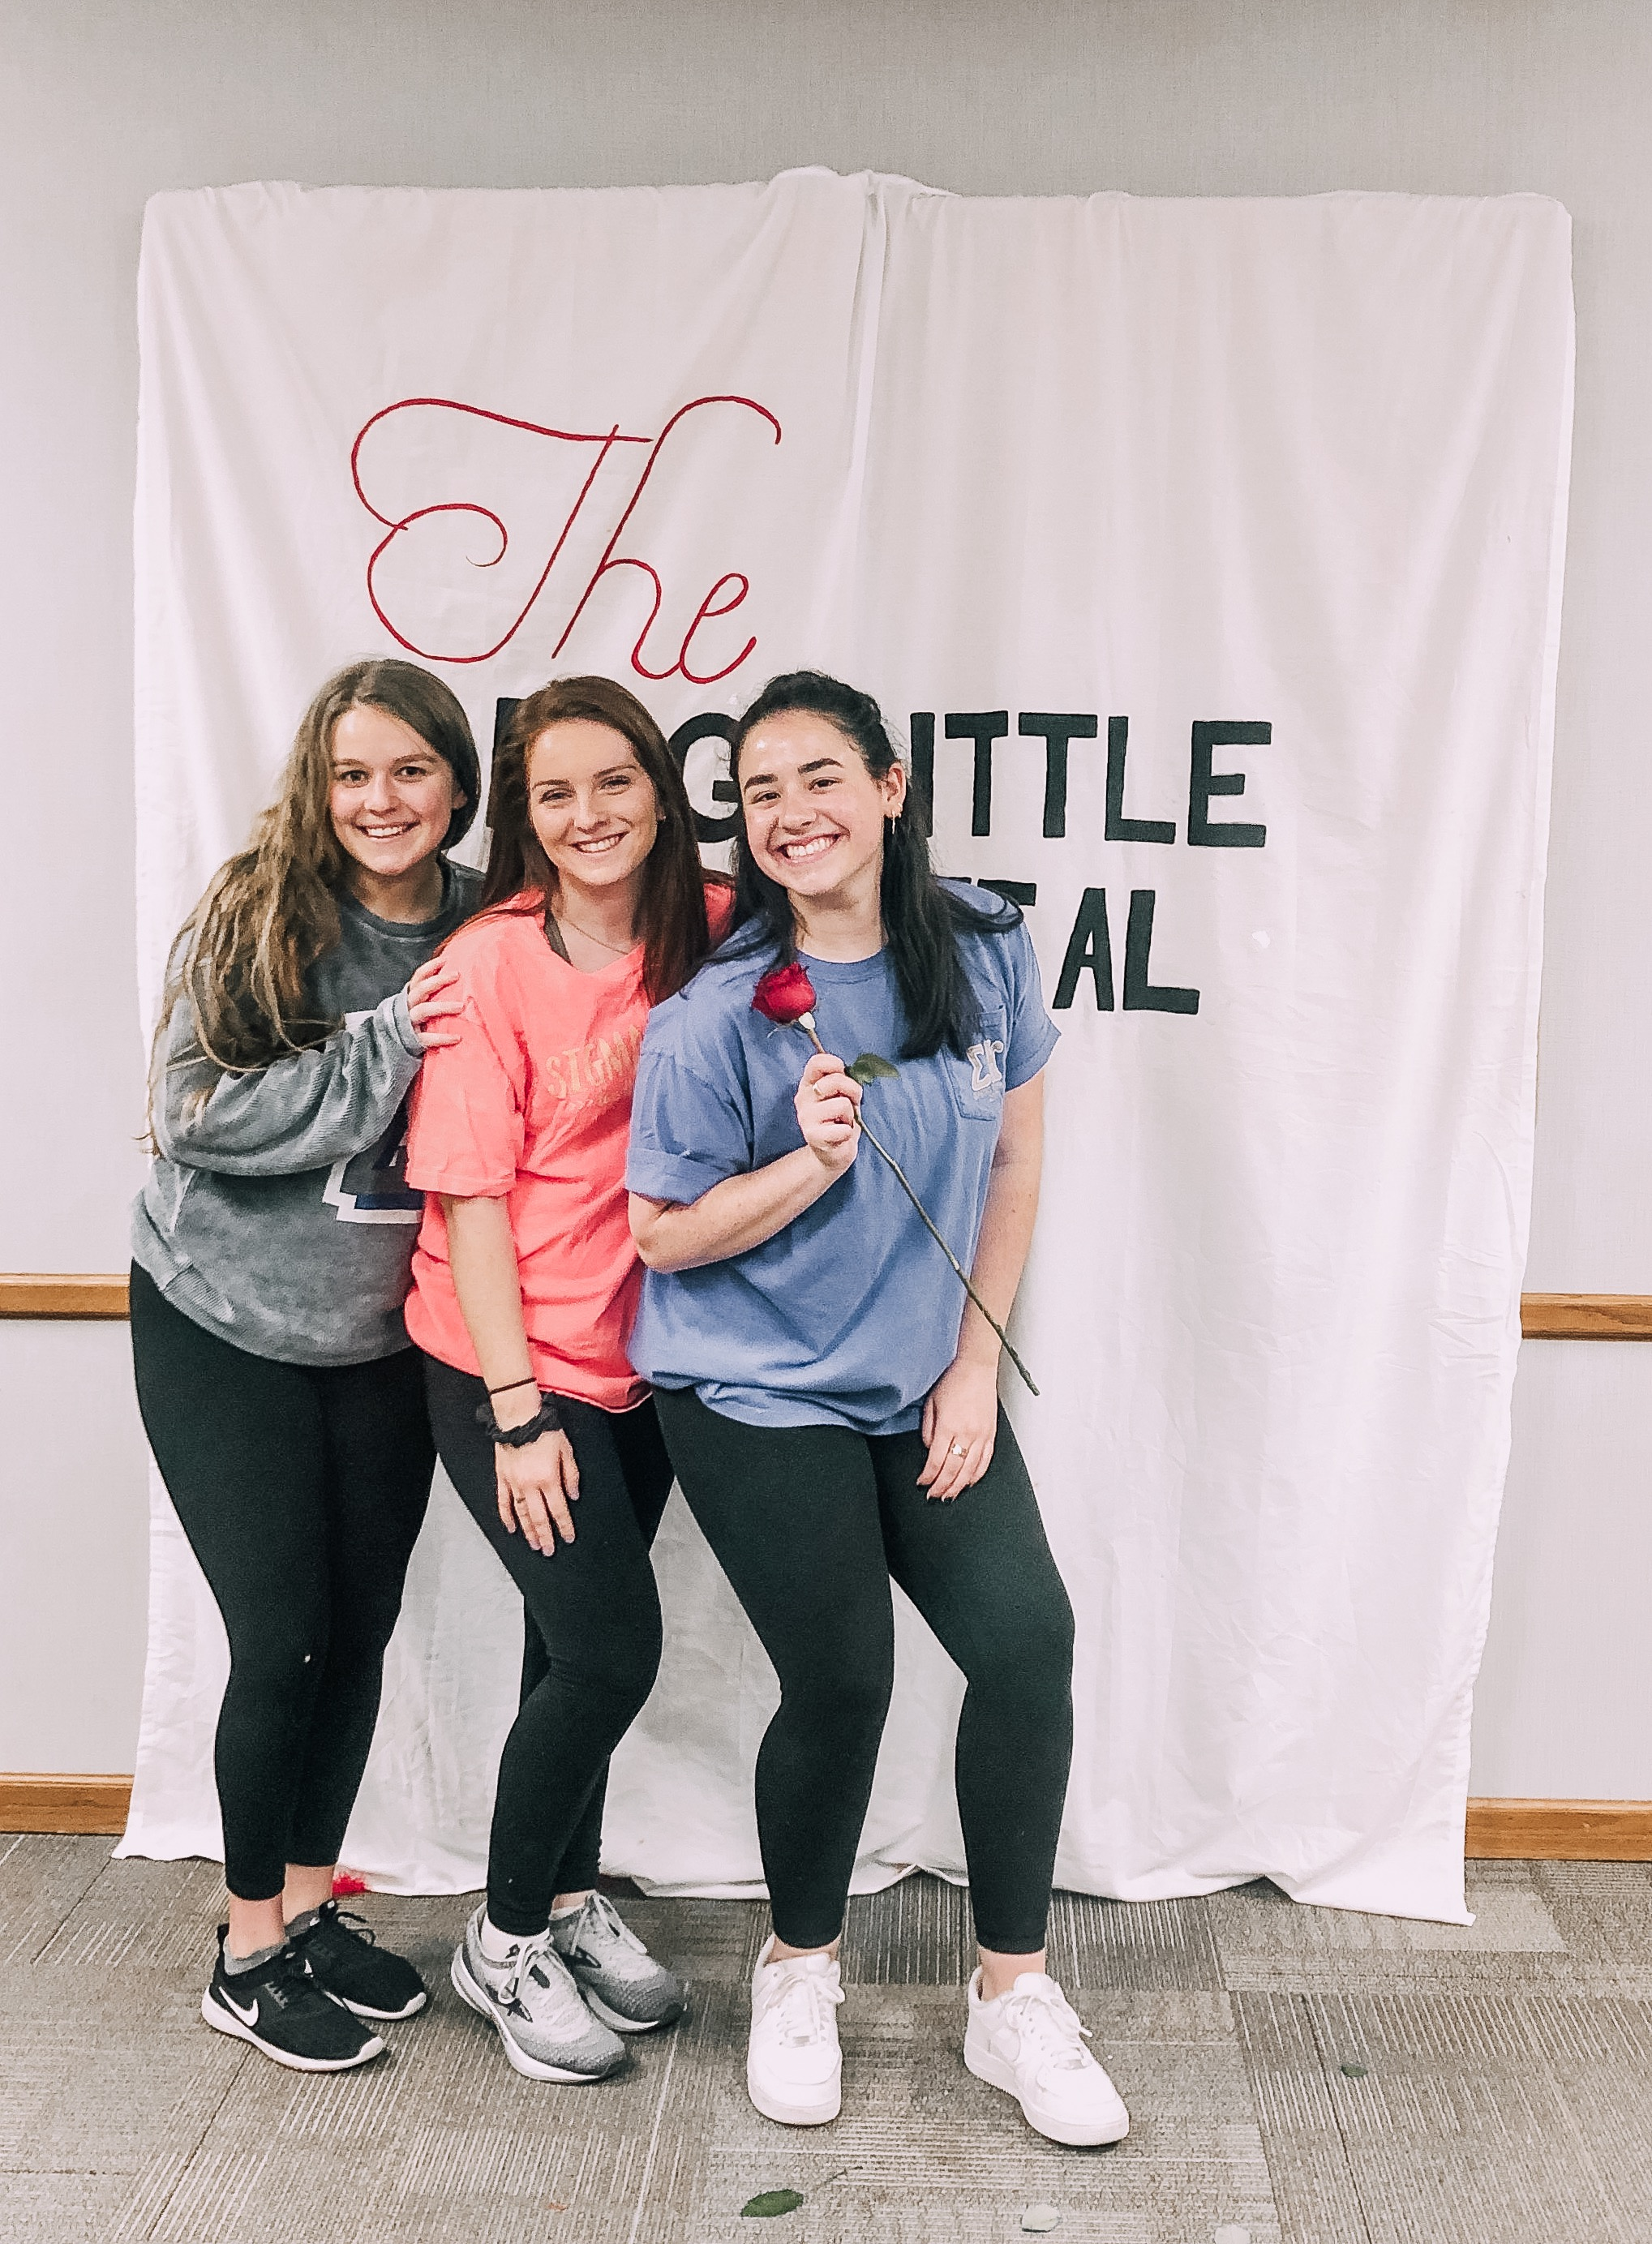 Big-Little Reveal Spring 2019